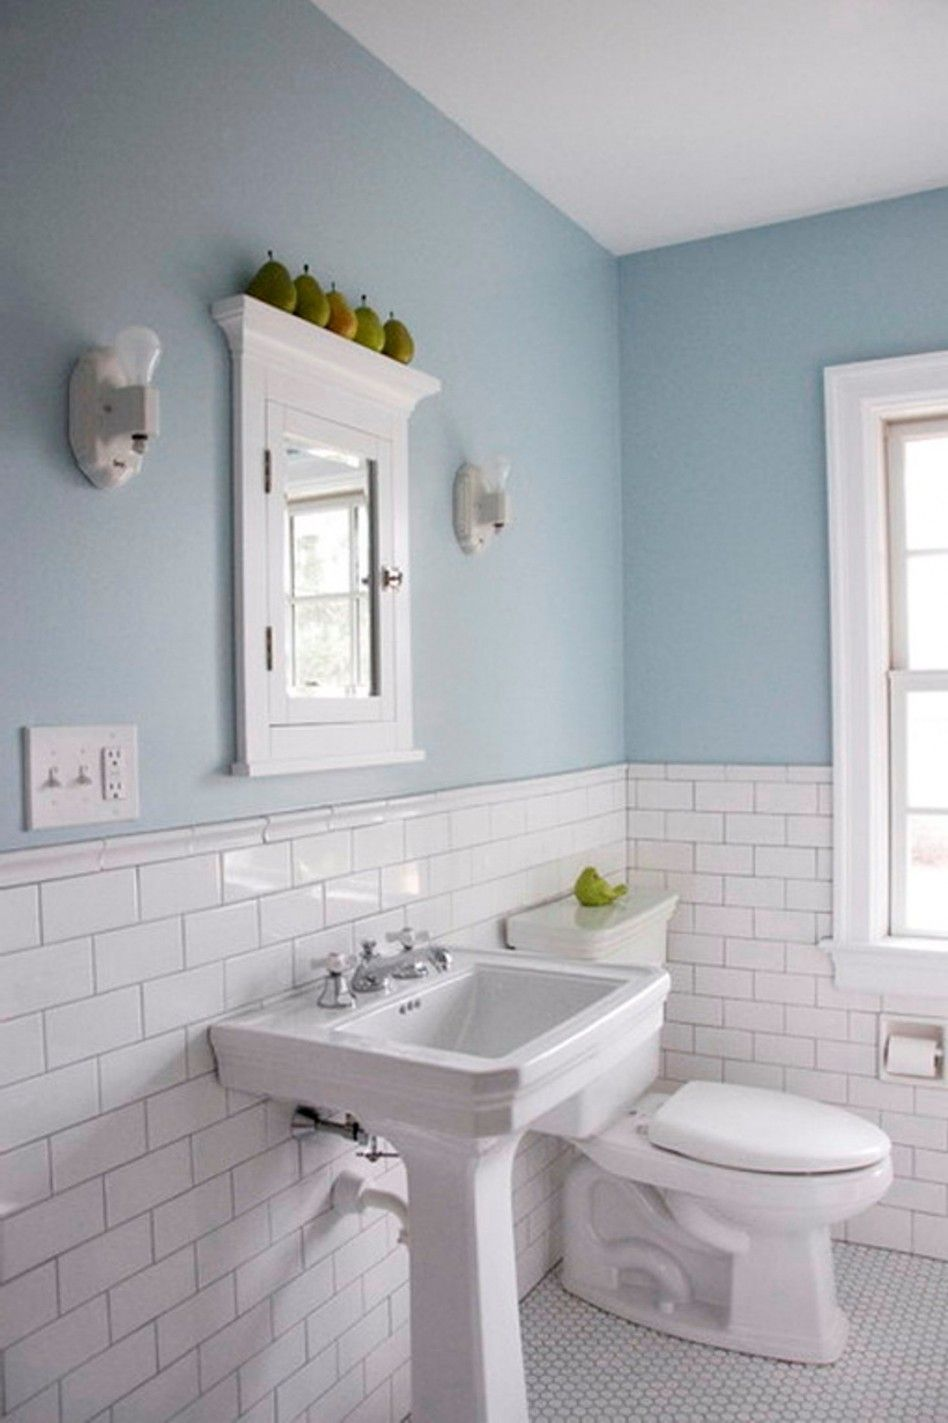 Blue and white bathroom floor tiles - White Subyway Color Combination Traditional Bathroom Floor Tile Also Wahbasin Water Closet And Ceramics Tile Half